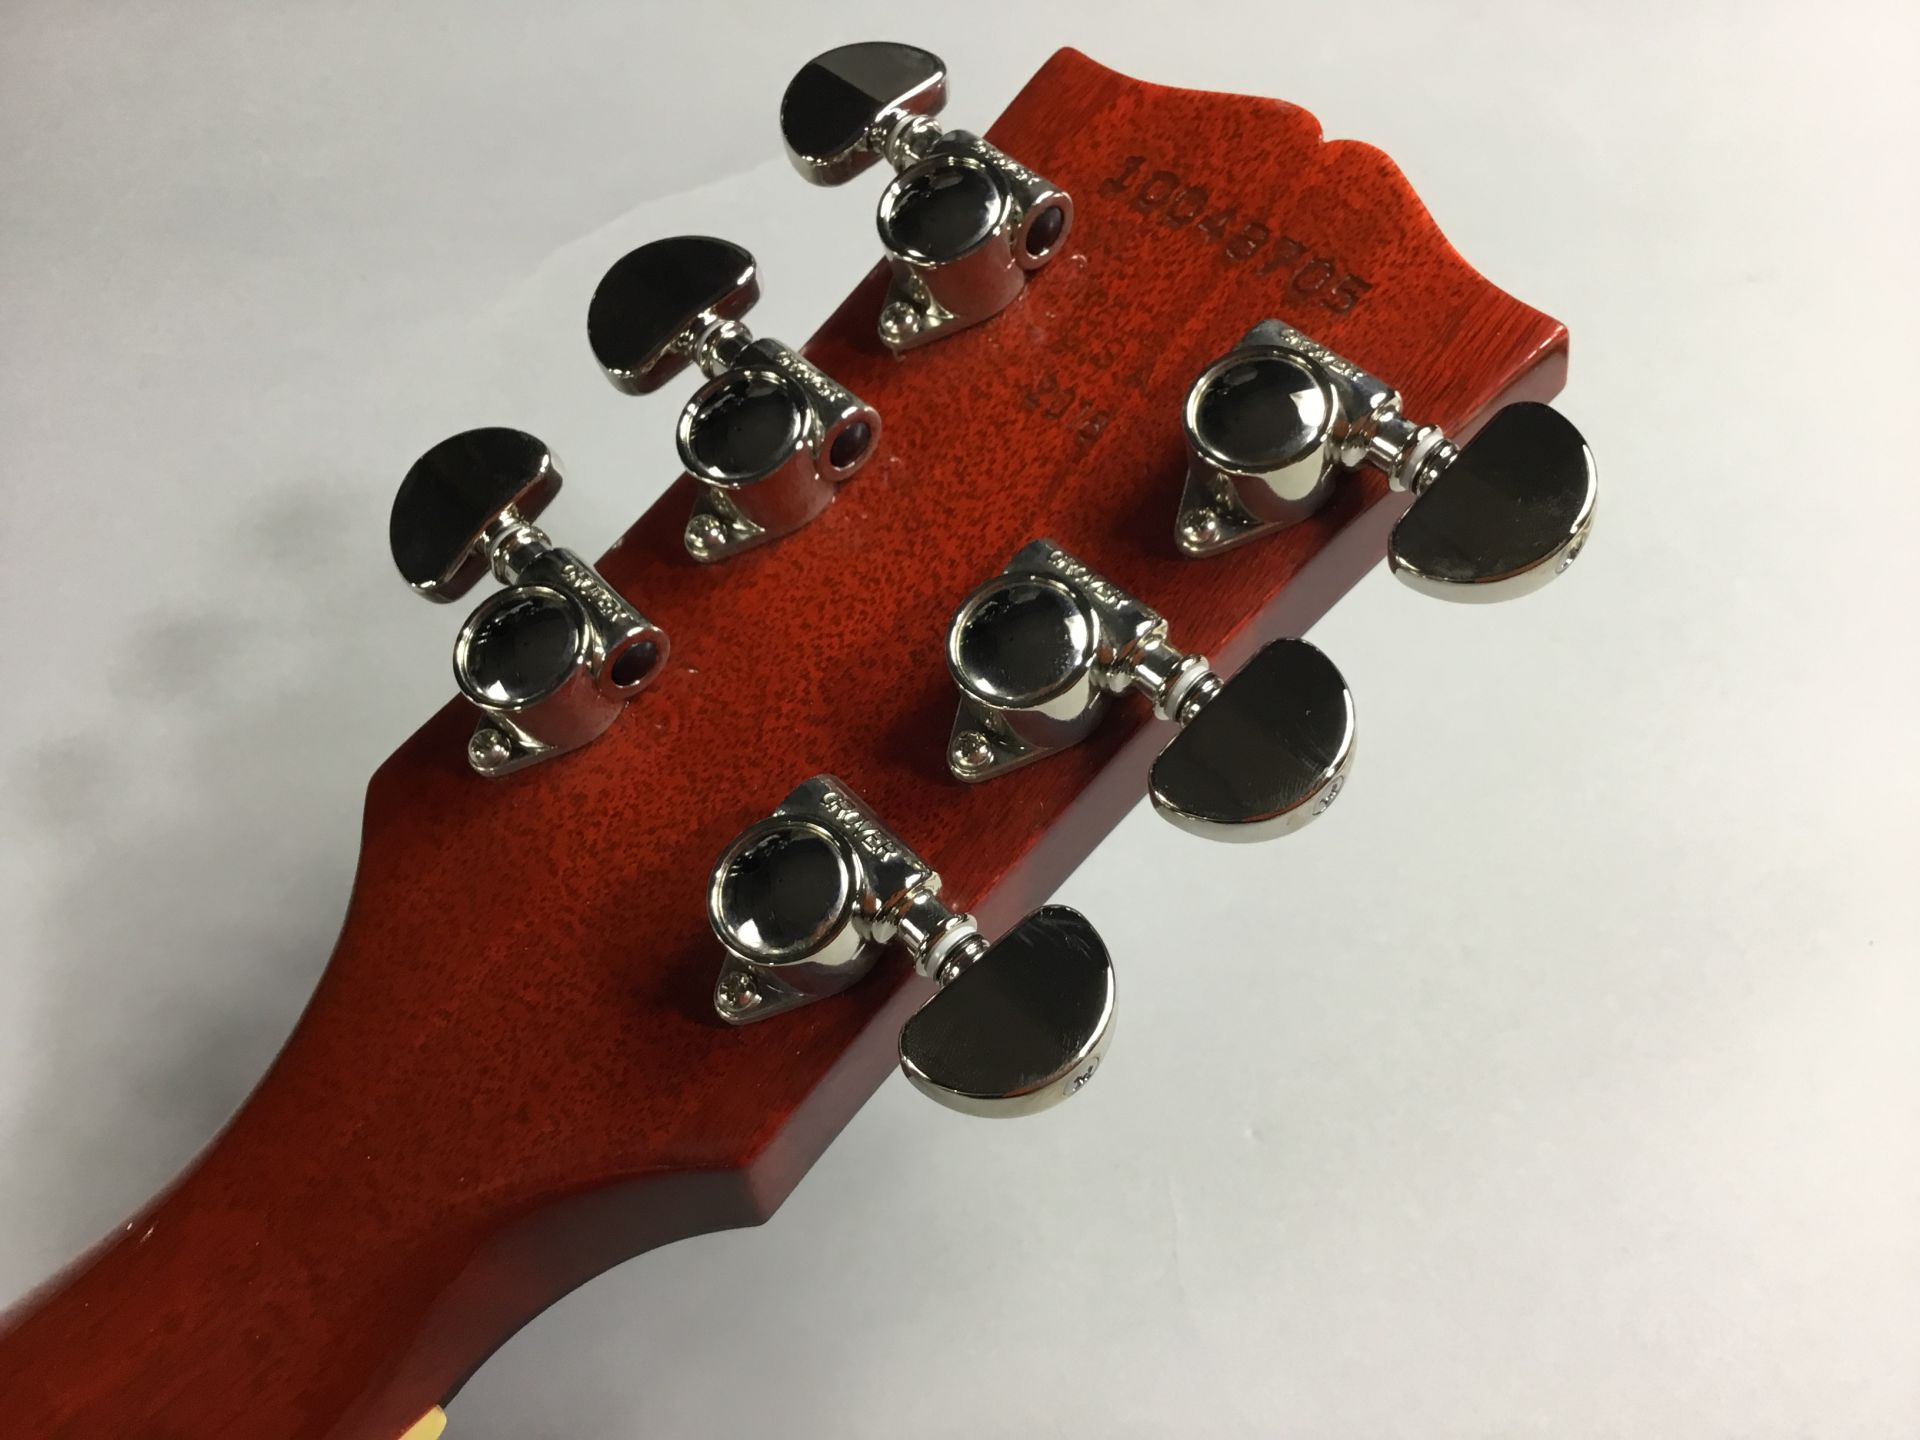 ES-335 TRADITIONALのケース・その他画像